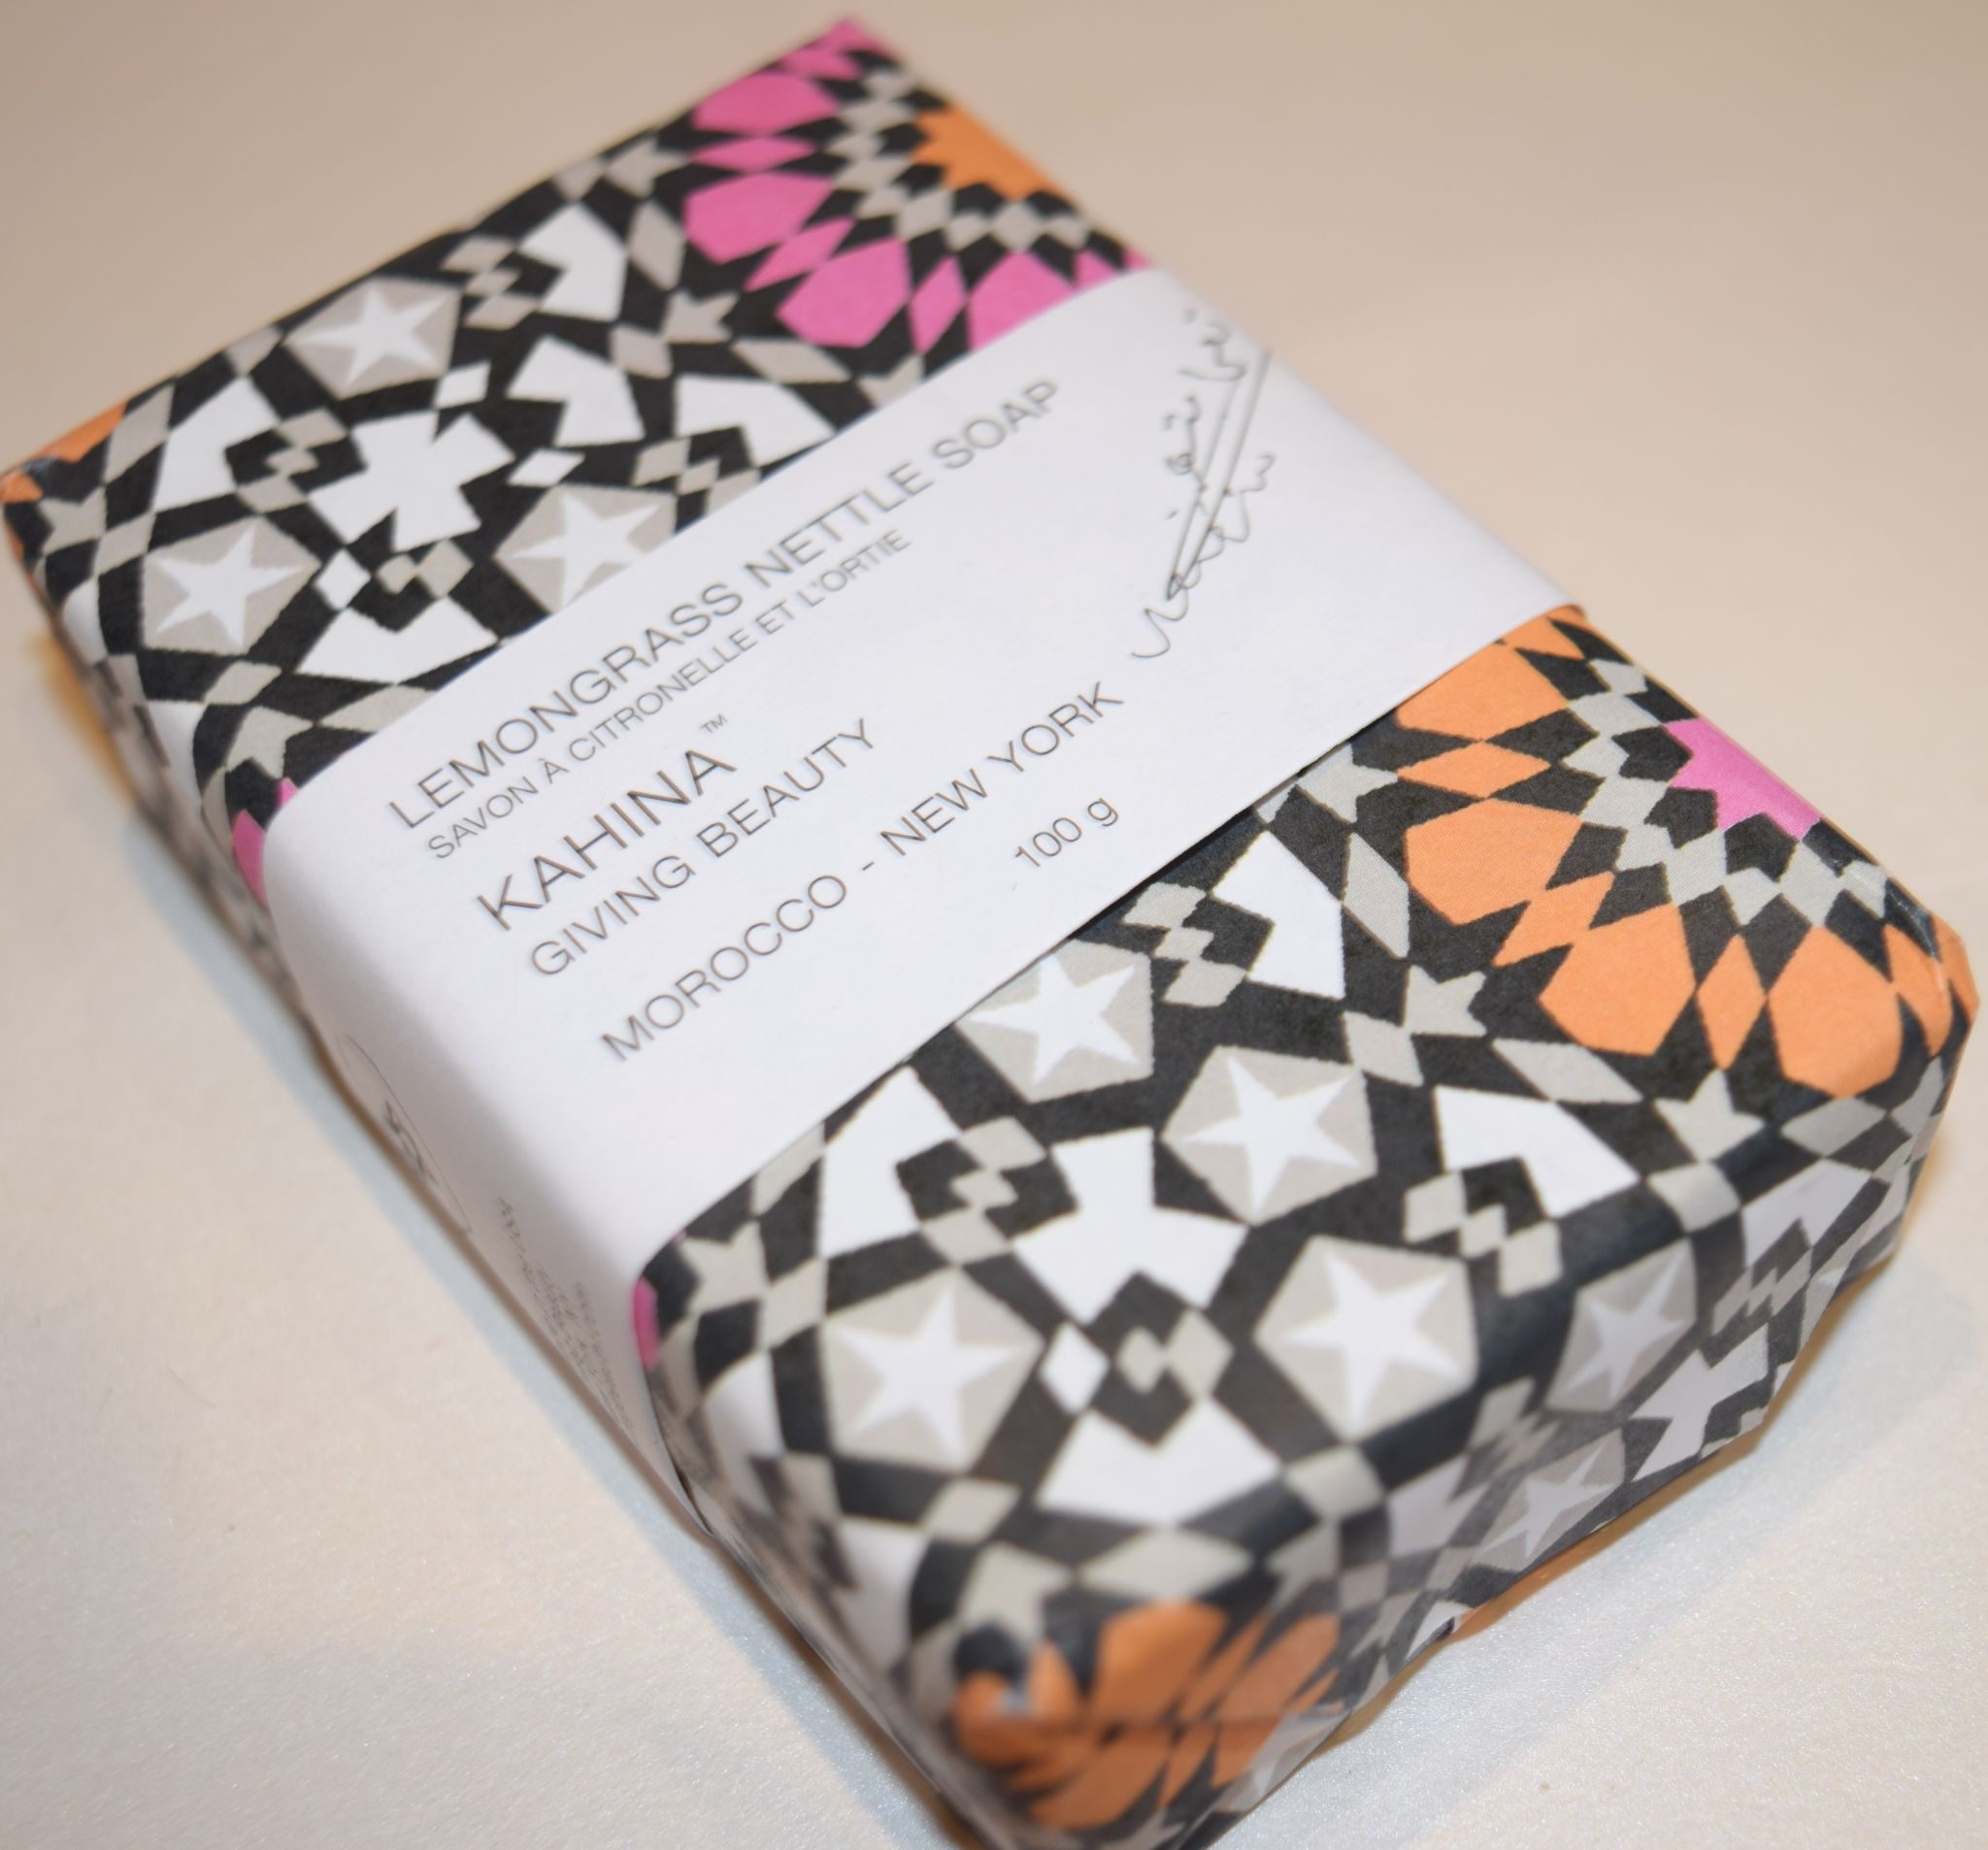 Kahina Giving Beauty Lemongrass Nettle Soap